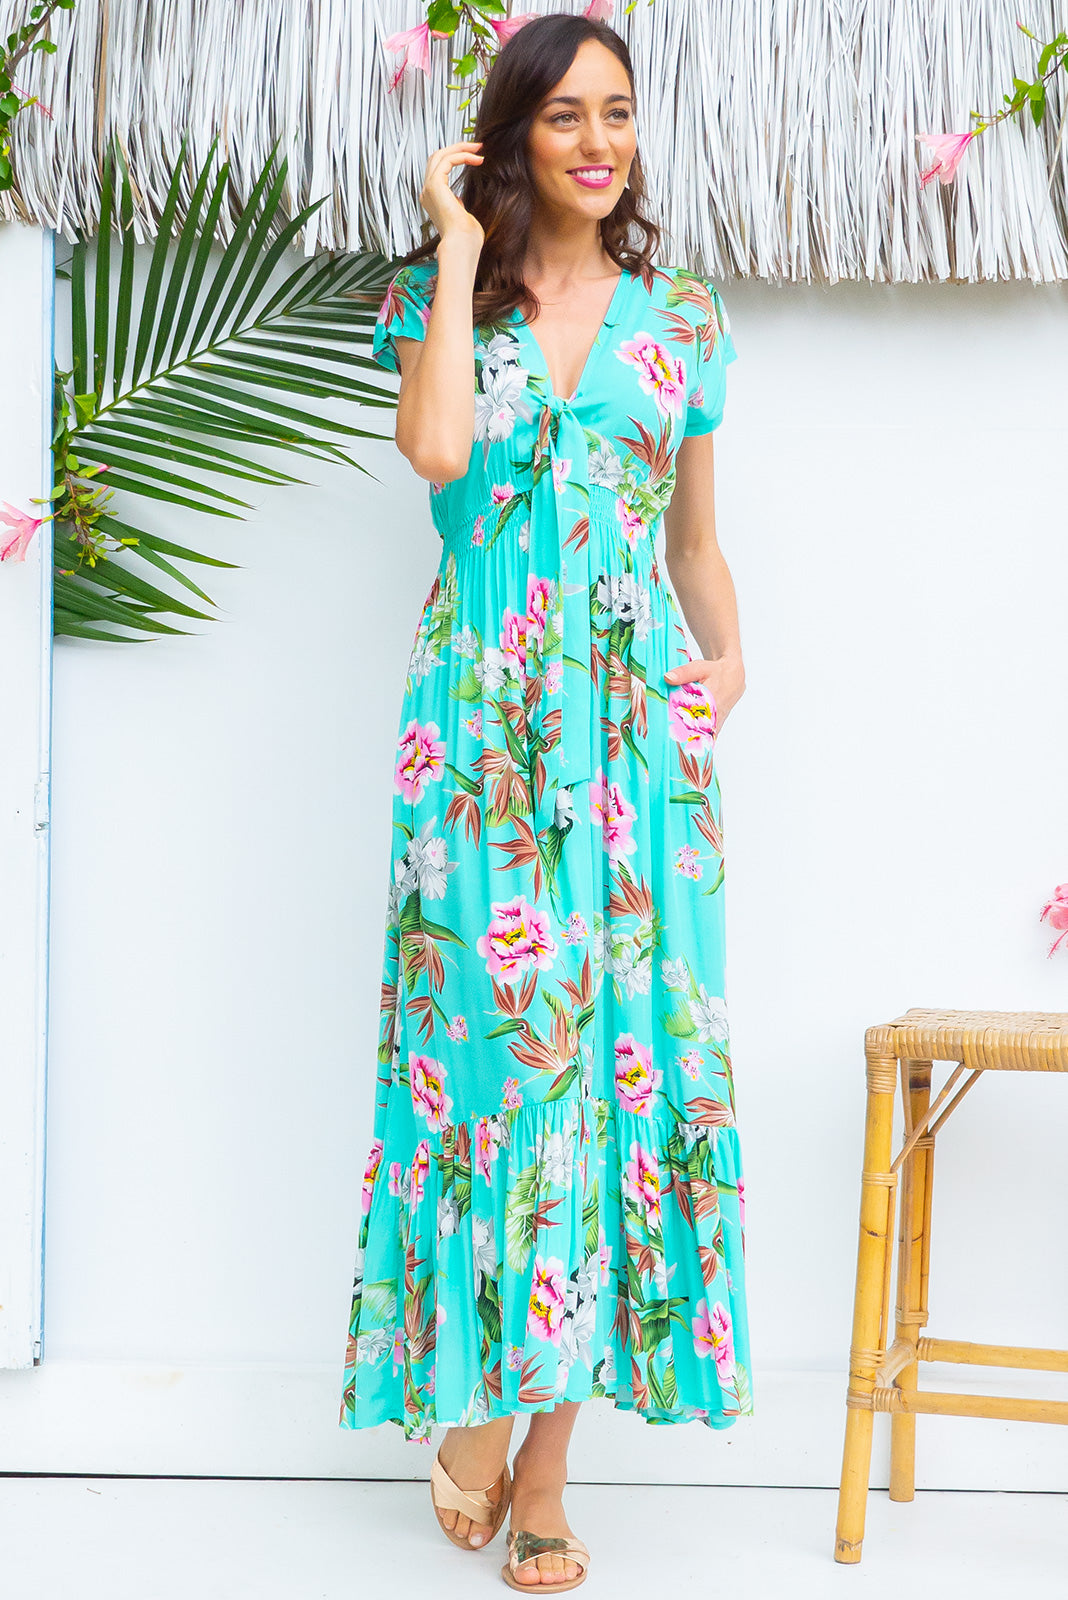 Nellie Tropical Turquoise Maxi Dress Maxi dress features elasticated empire line with a cap sleeve and deep v neck the fabric is a soft woven rayon in a soft mint green based tropical inspired floral print